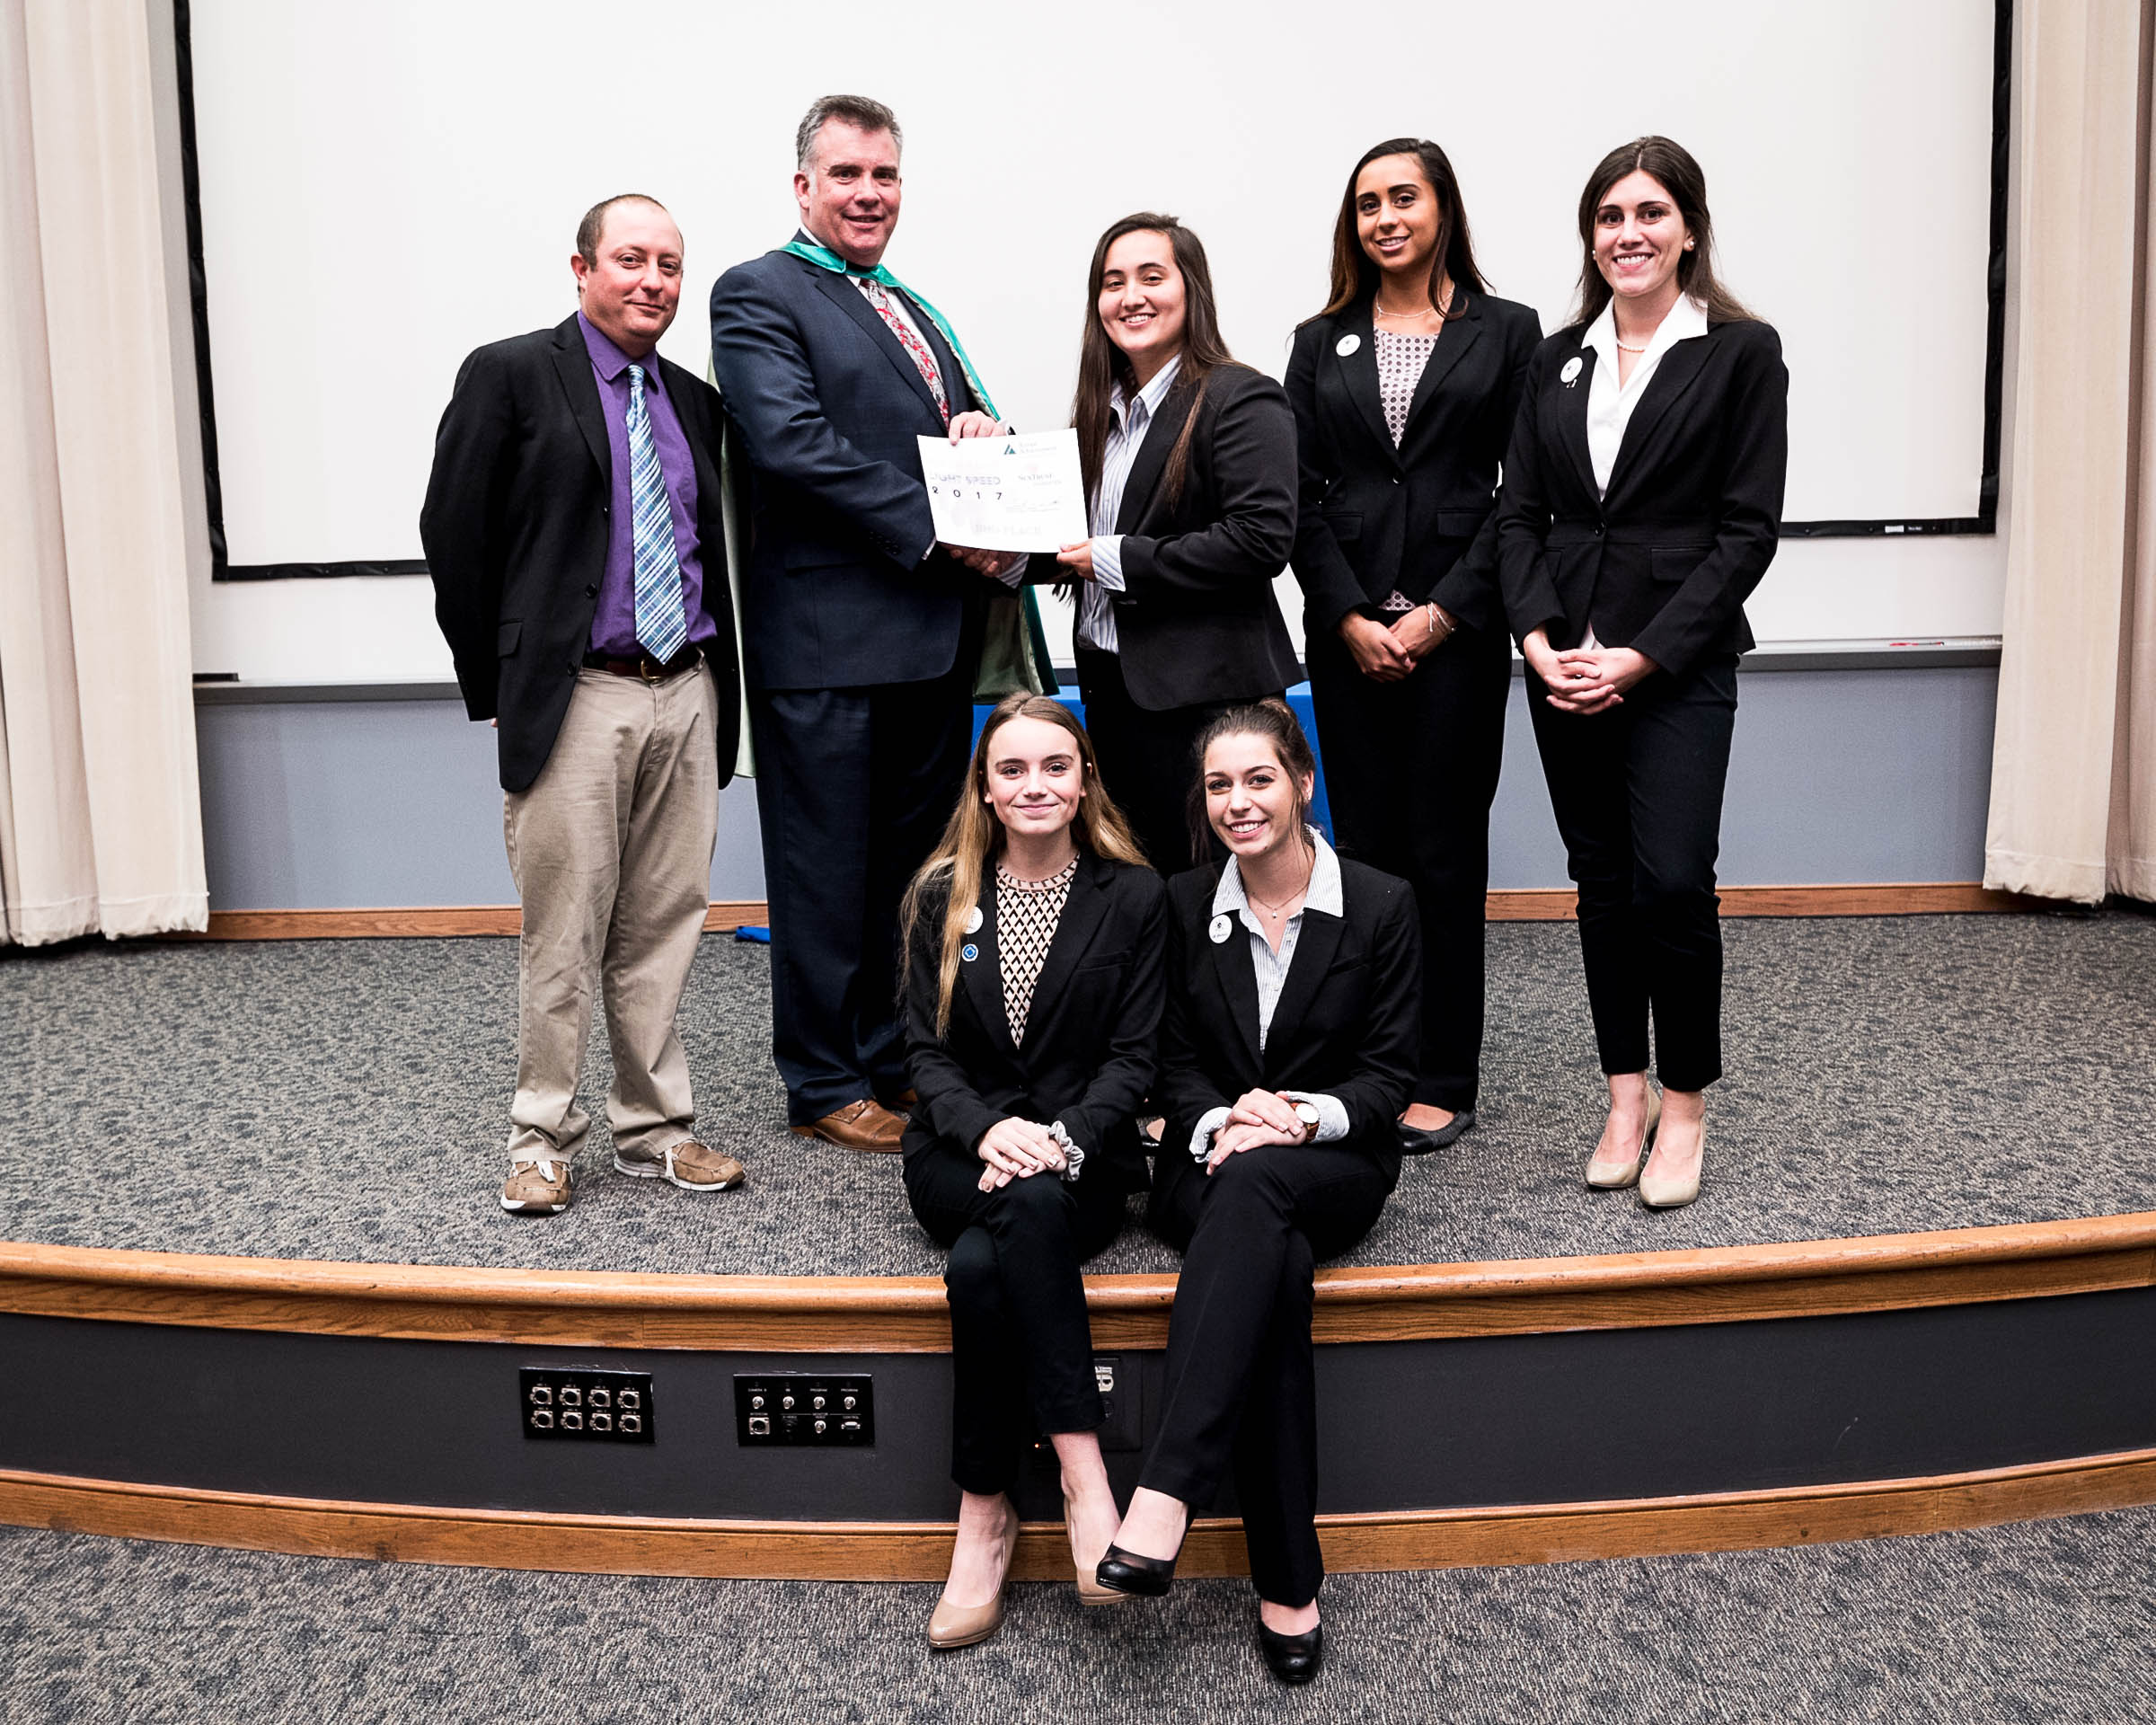 VB Pockets of Kellam High School was First Runner Up and won Best Annual Report and Best Commercial (Pictured with teacher Jason Copeland and JA President Frank E. Hughlett).